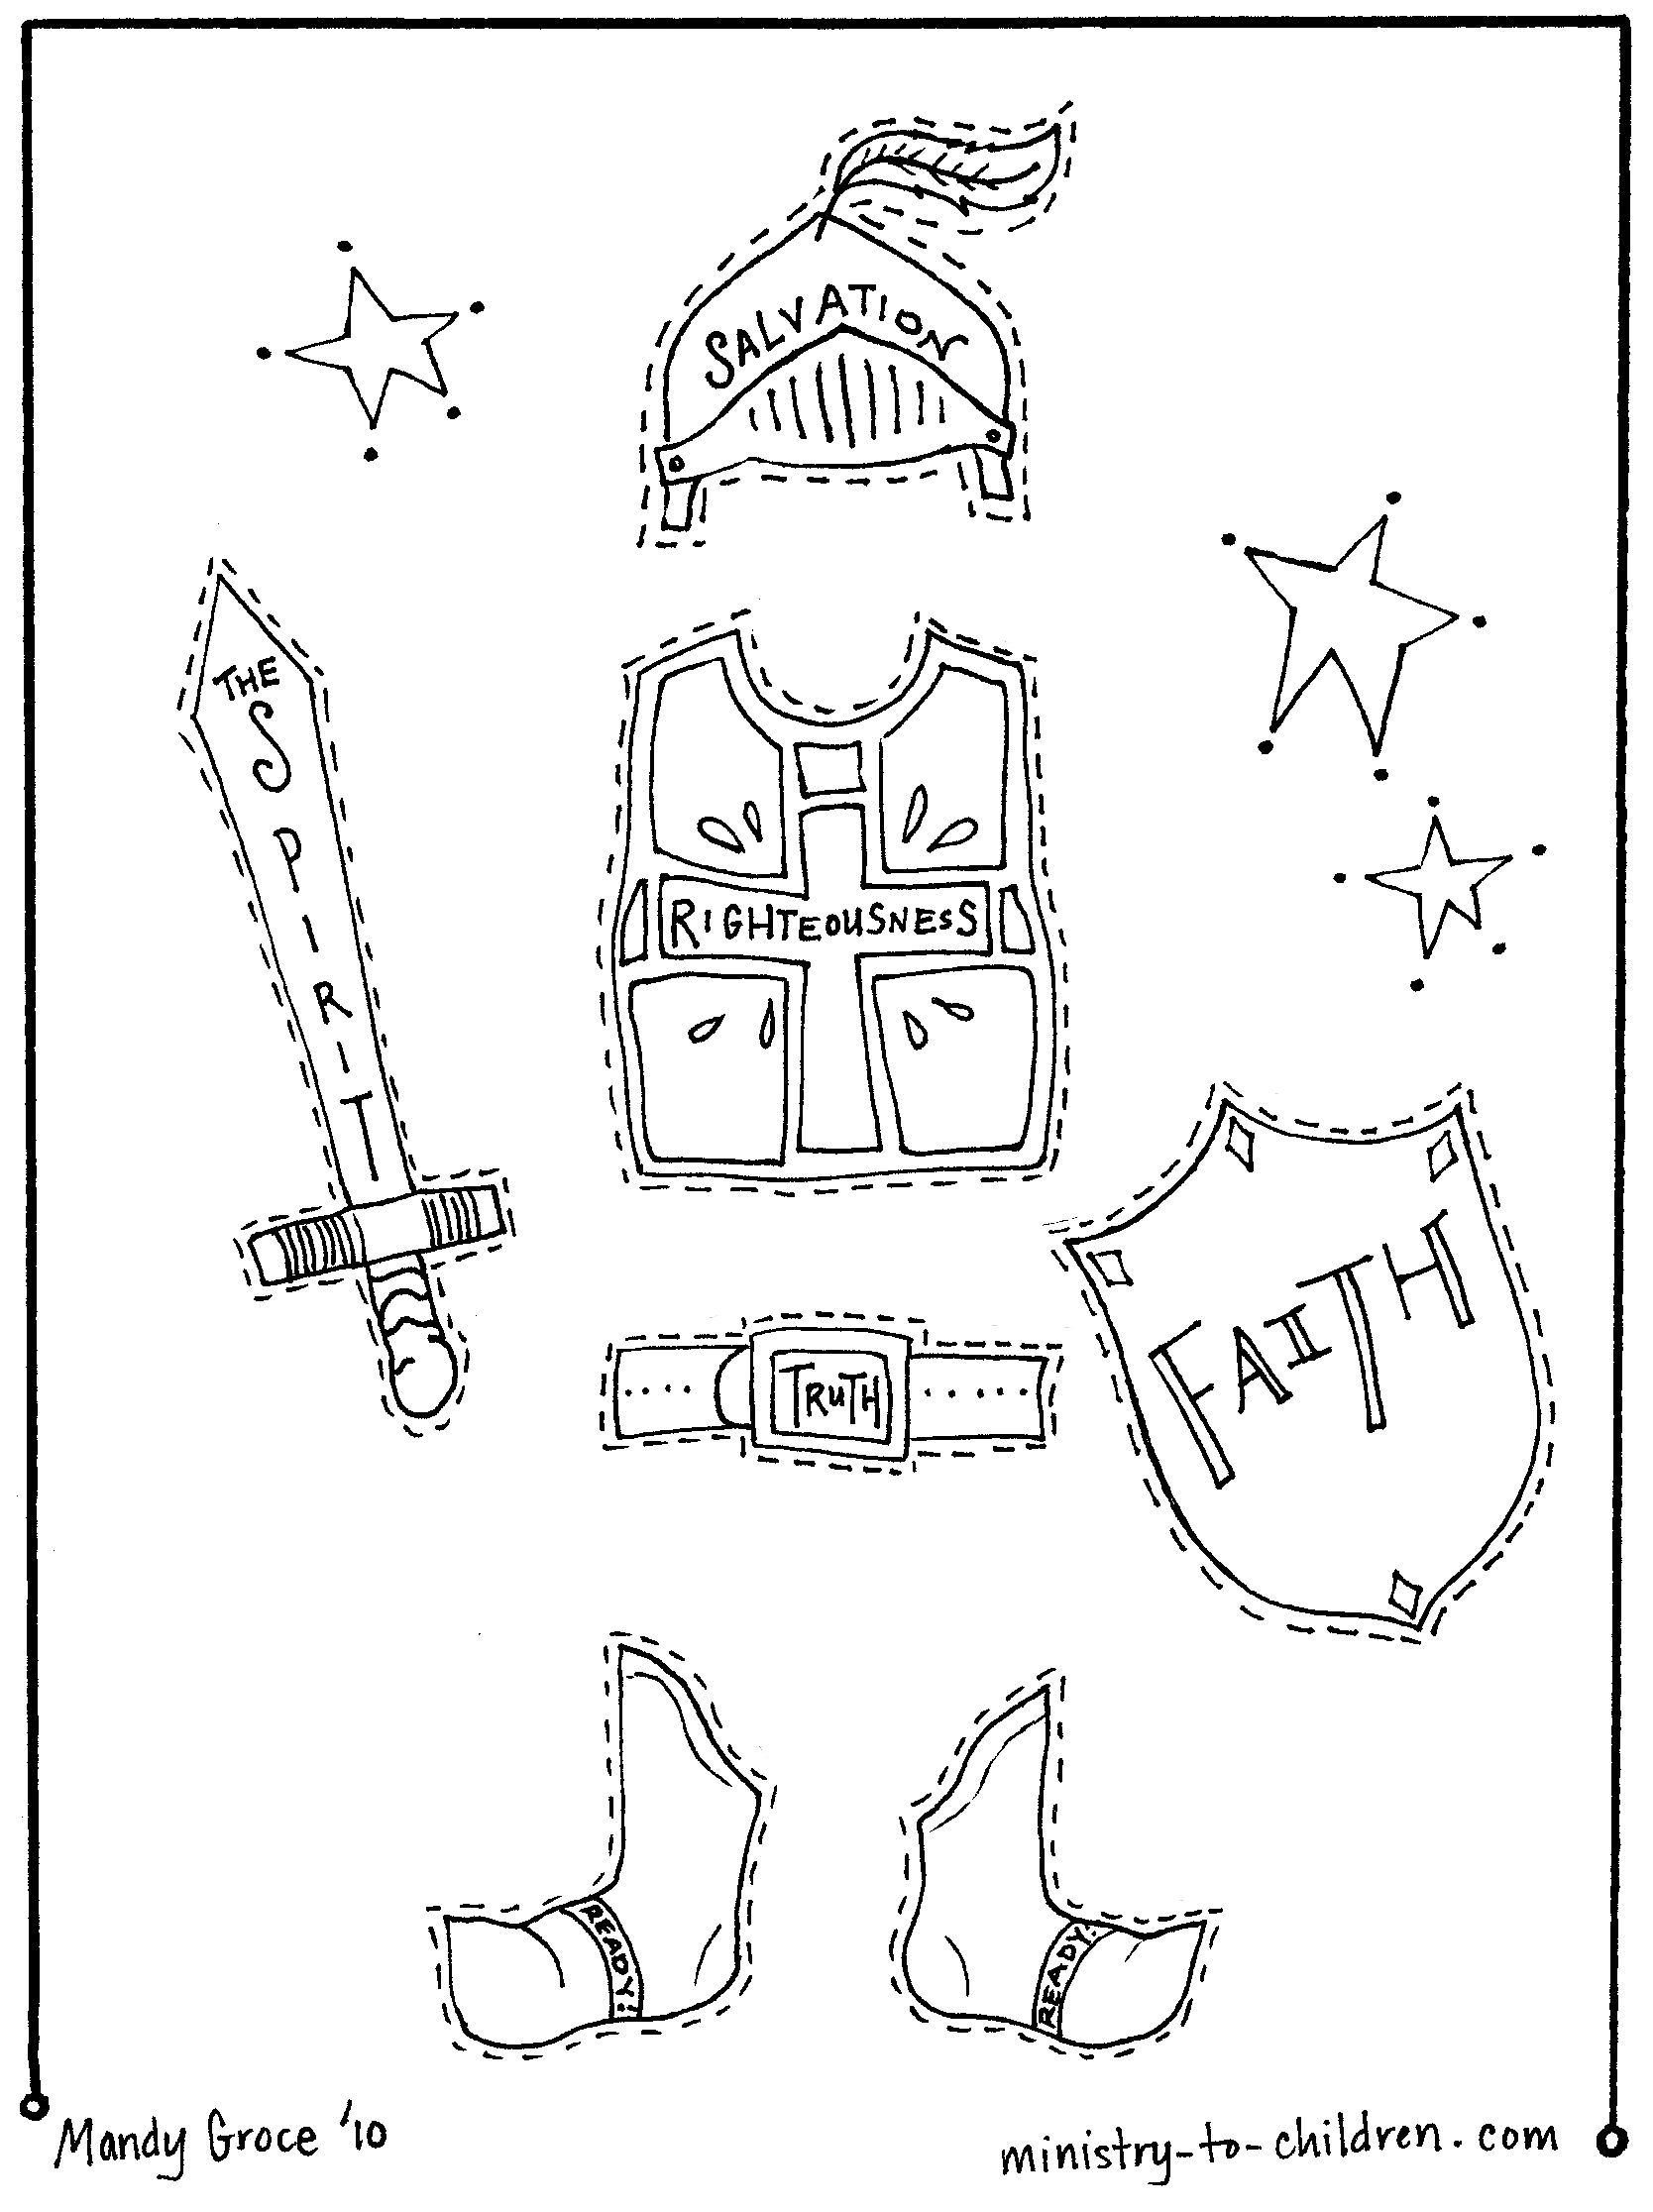 Coloring pages for preschoolers on salavation - Full Armor Of God Coloring Sheet Sketch Coloring Page